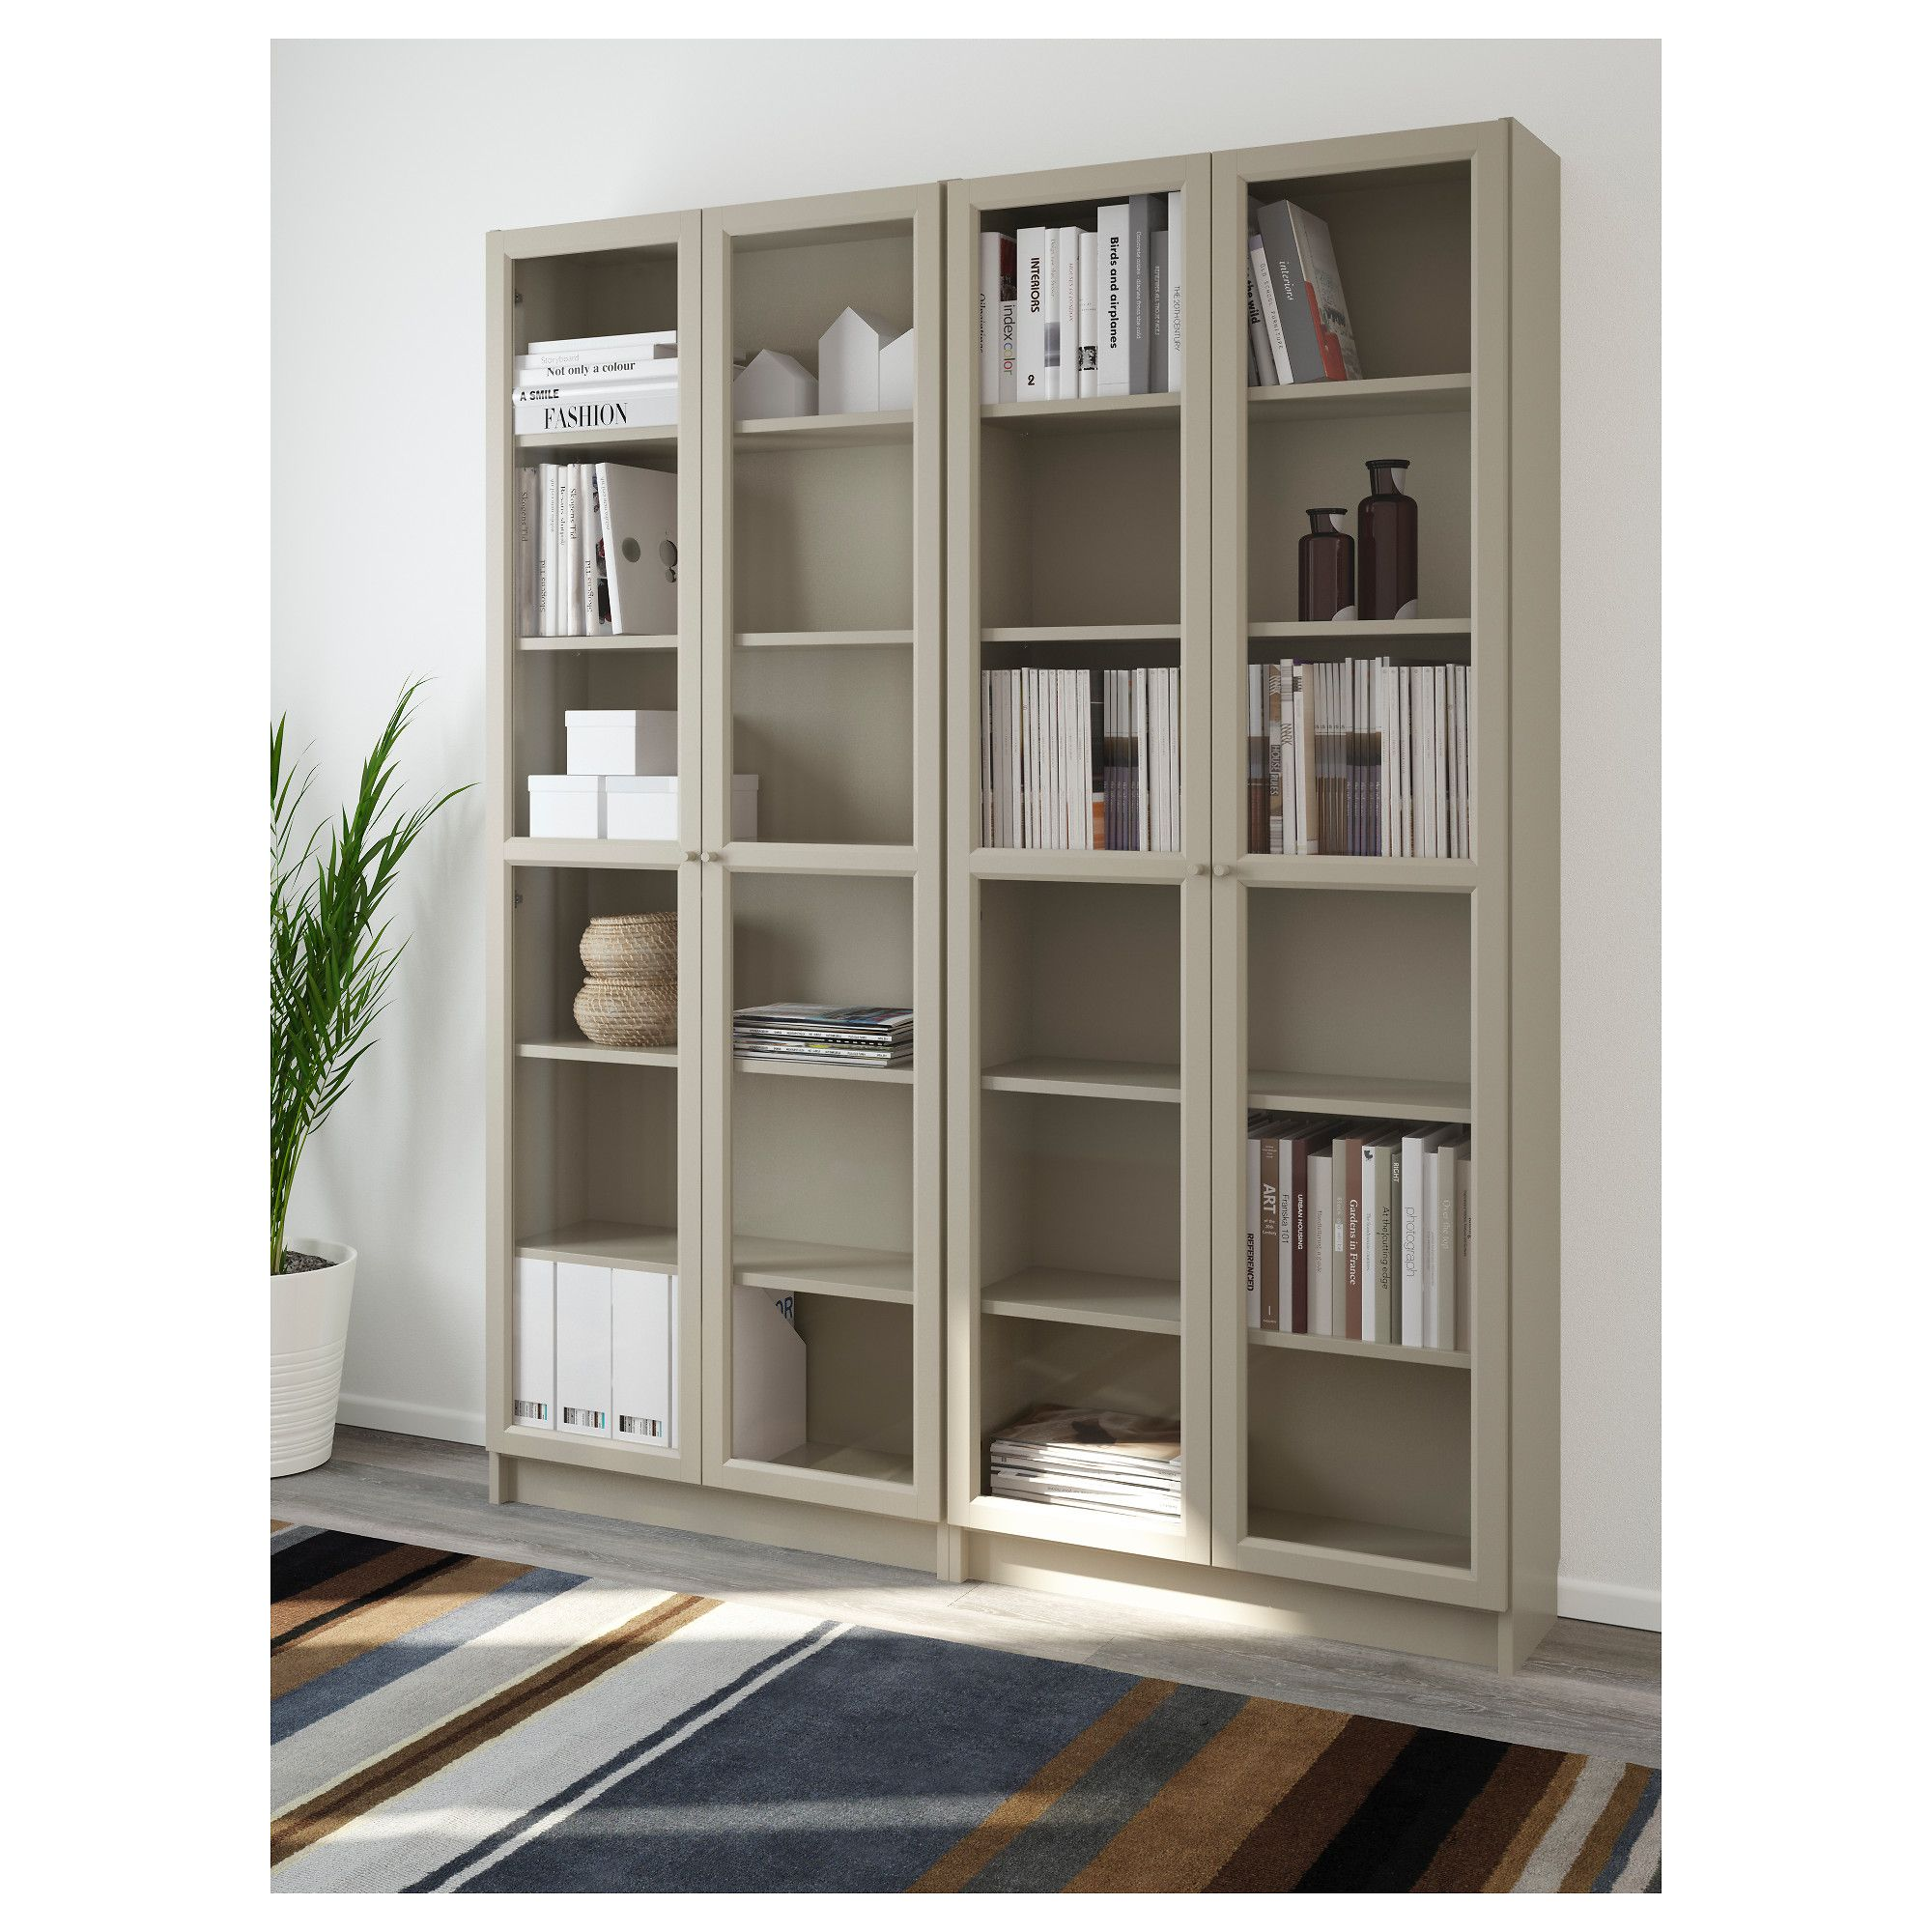 Billy Bookcase Ikea Canada Ikea Billy Bookcase Beige In 2019 Bokhylla